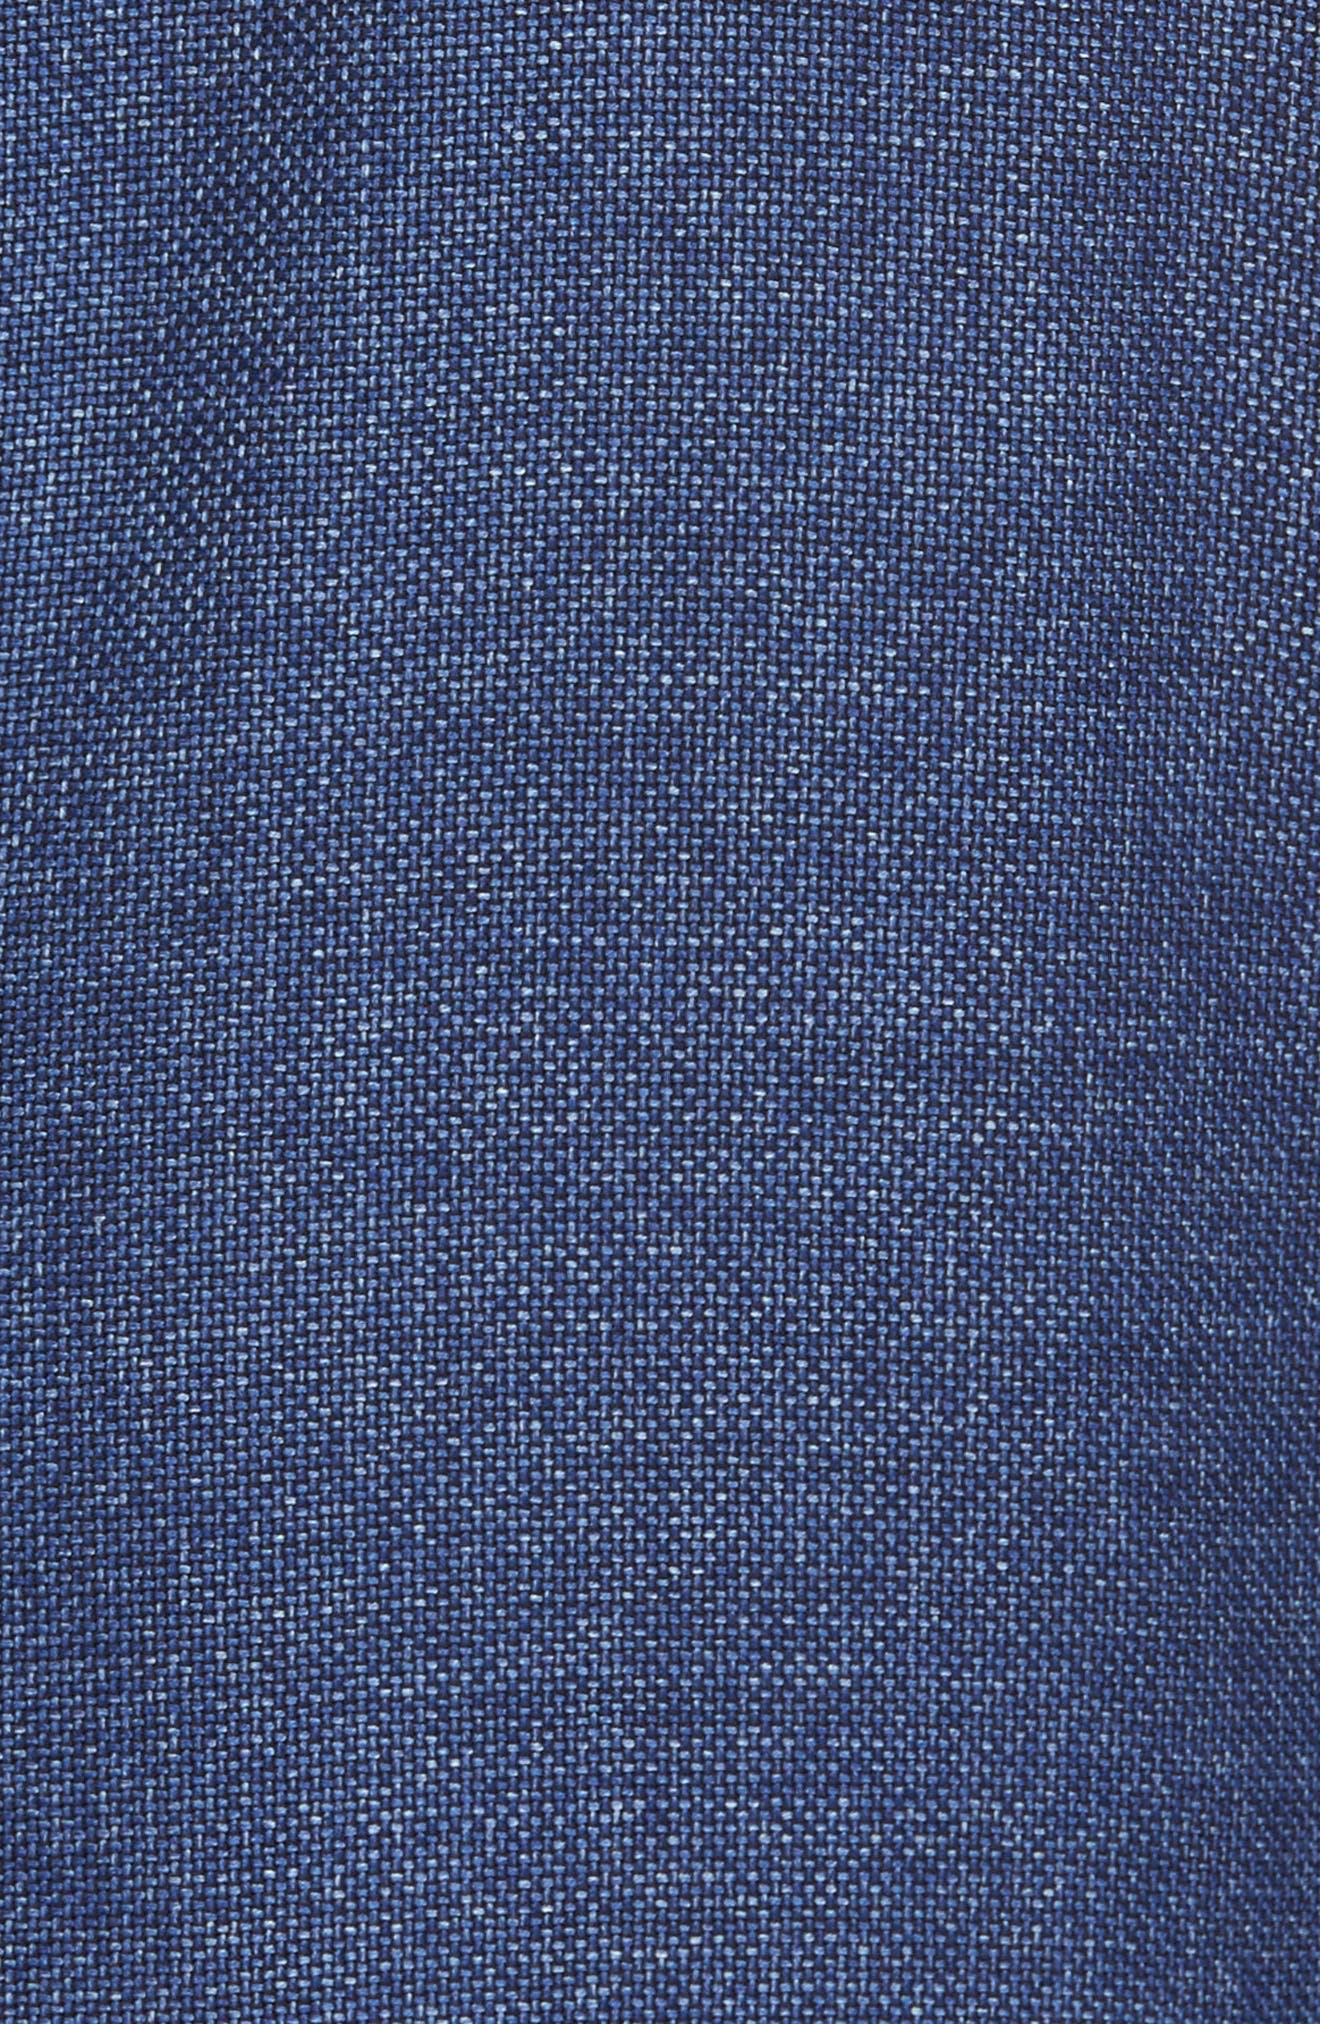 Trim Fit Wool Blazer,                             Alternate thumbnail 5, color,                             Medium Blue